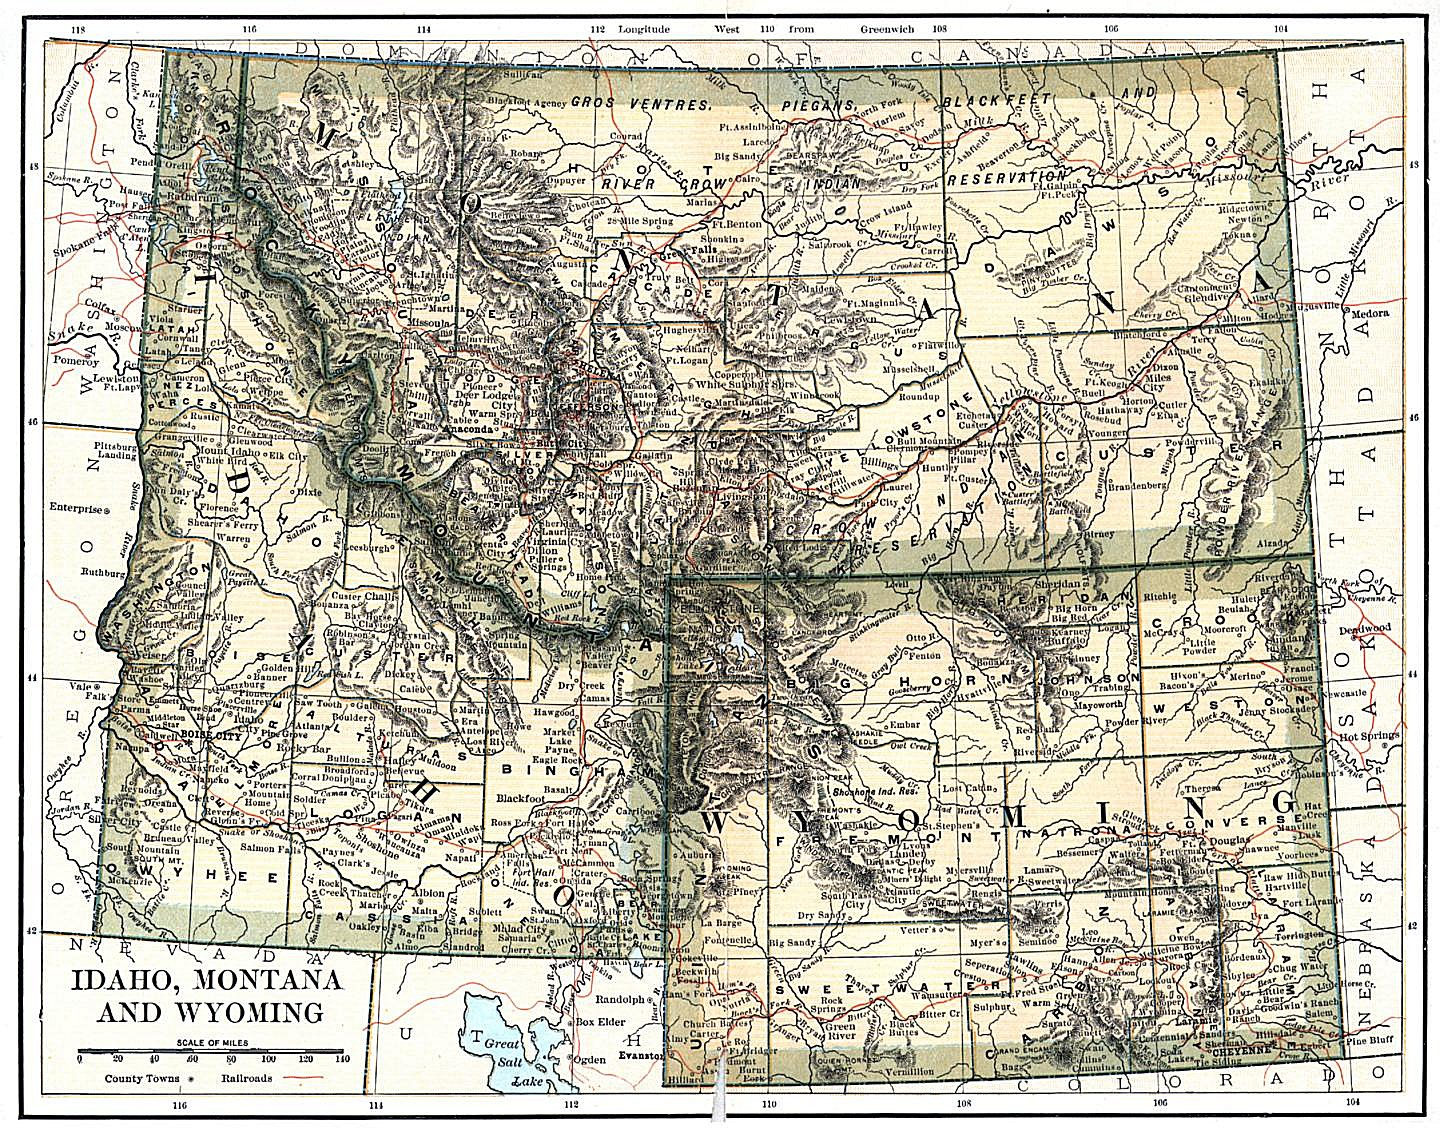 Wyoming Maps. Wyoming Digital Map Library. Table Of Contents. United States Digital Map Library